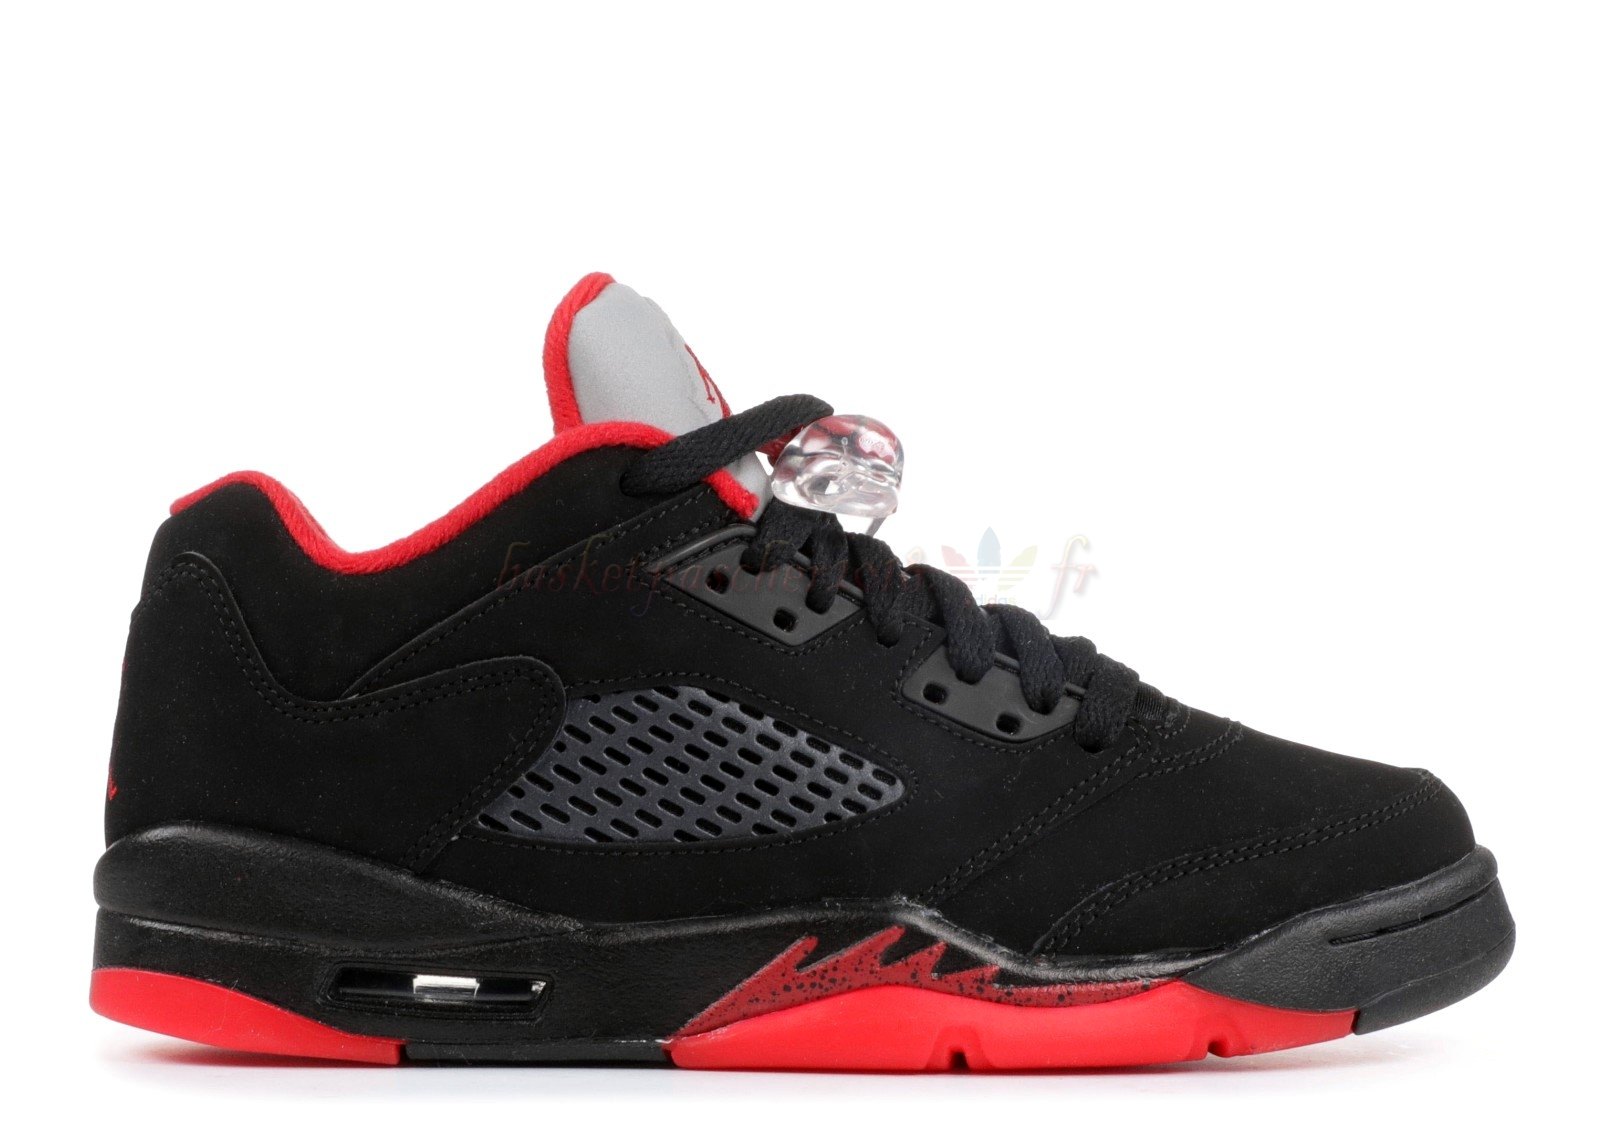 Vente Chaude Chaussures De Basketball Femme Air Jordan 5 Retro Low (Gs)